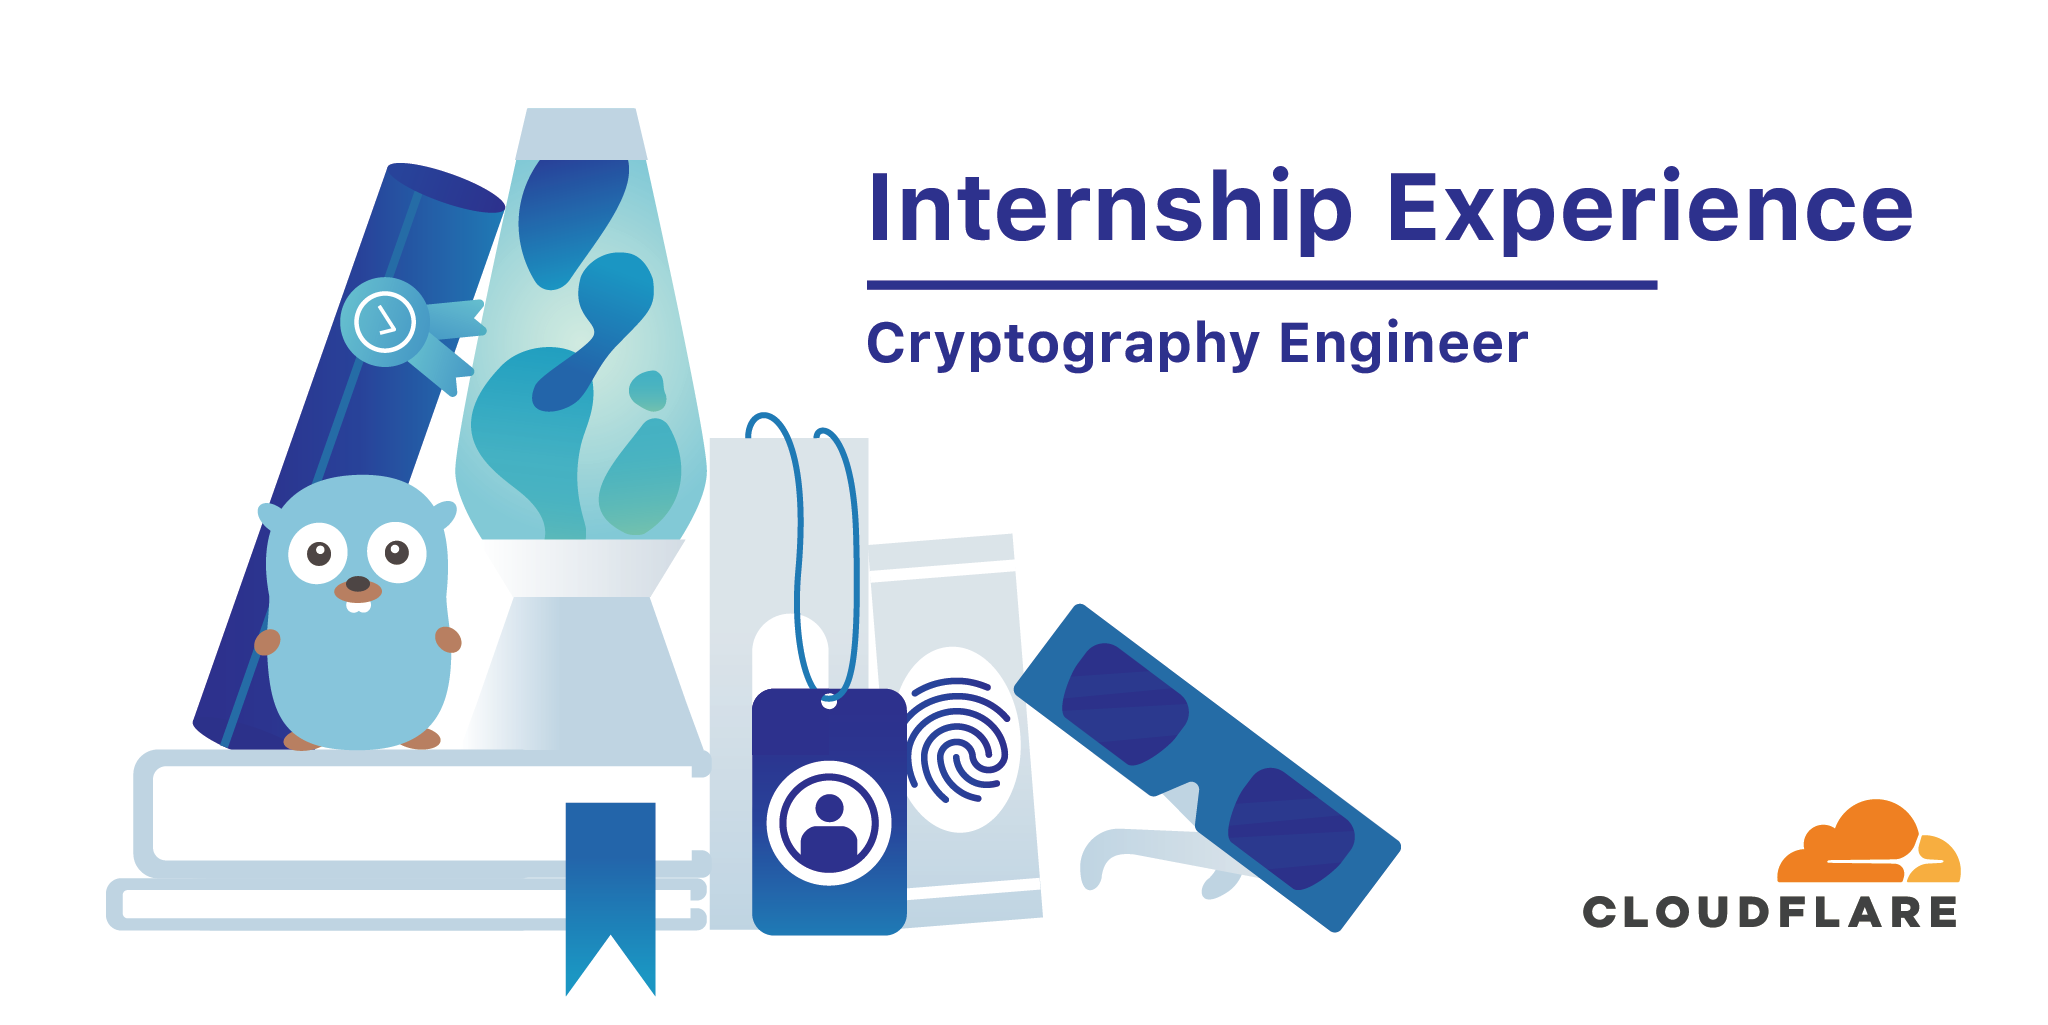 Internship Experience: Cryptography Engineer